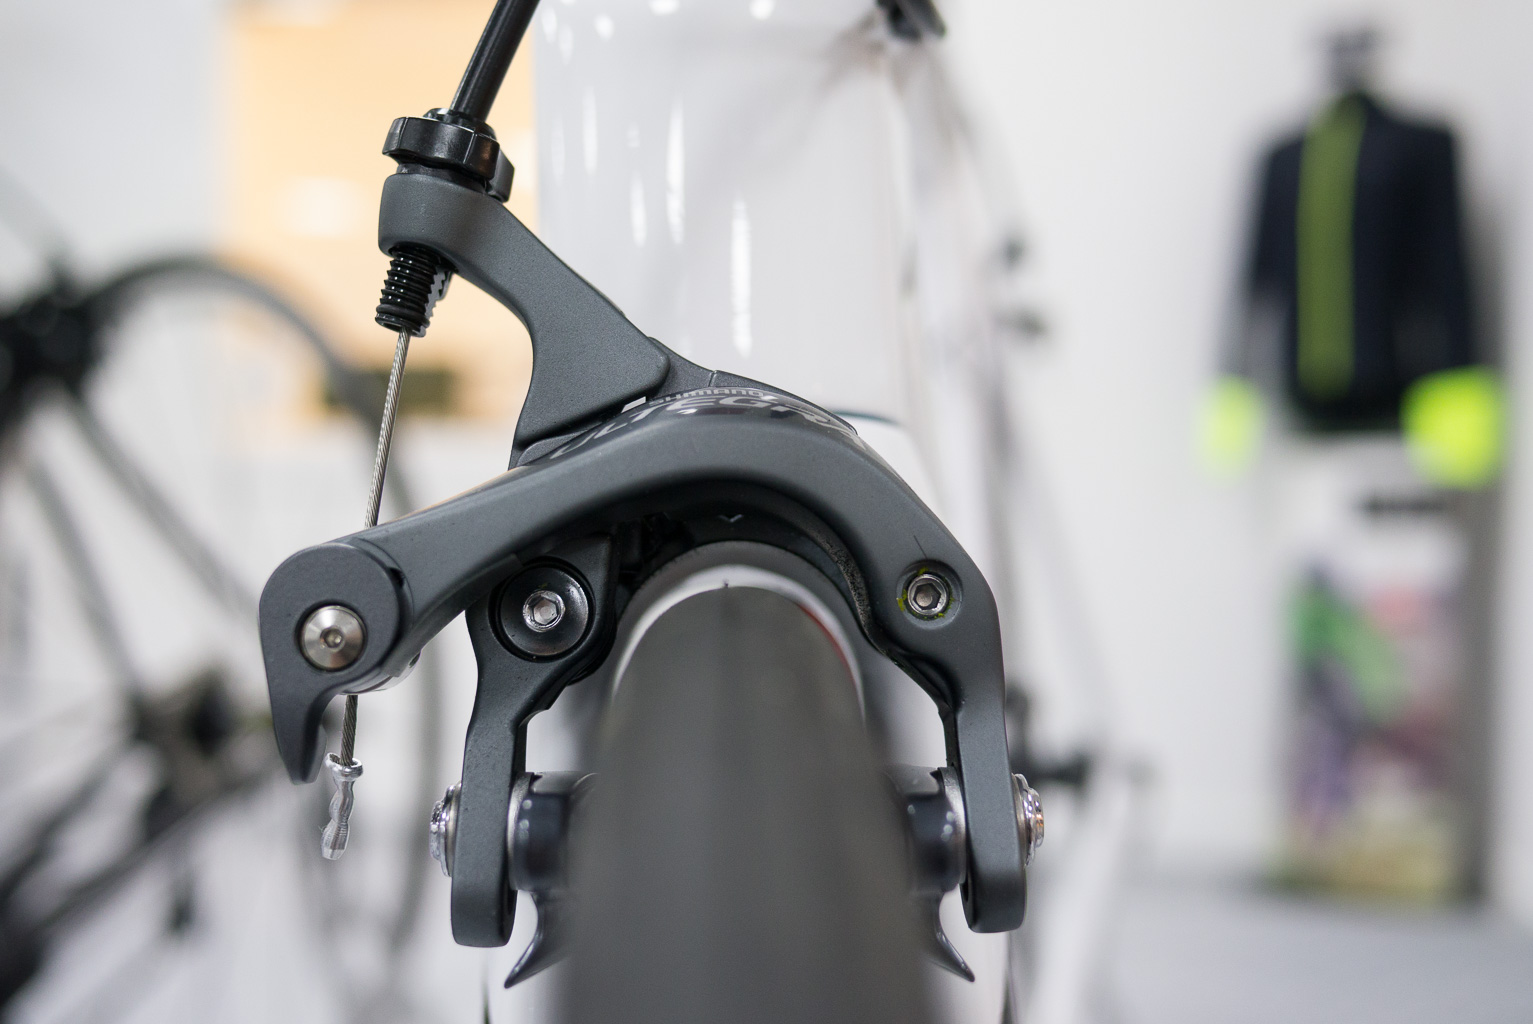 Buyers guide to road bike brakes - Merlin Cycles Blog